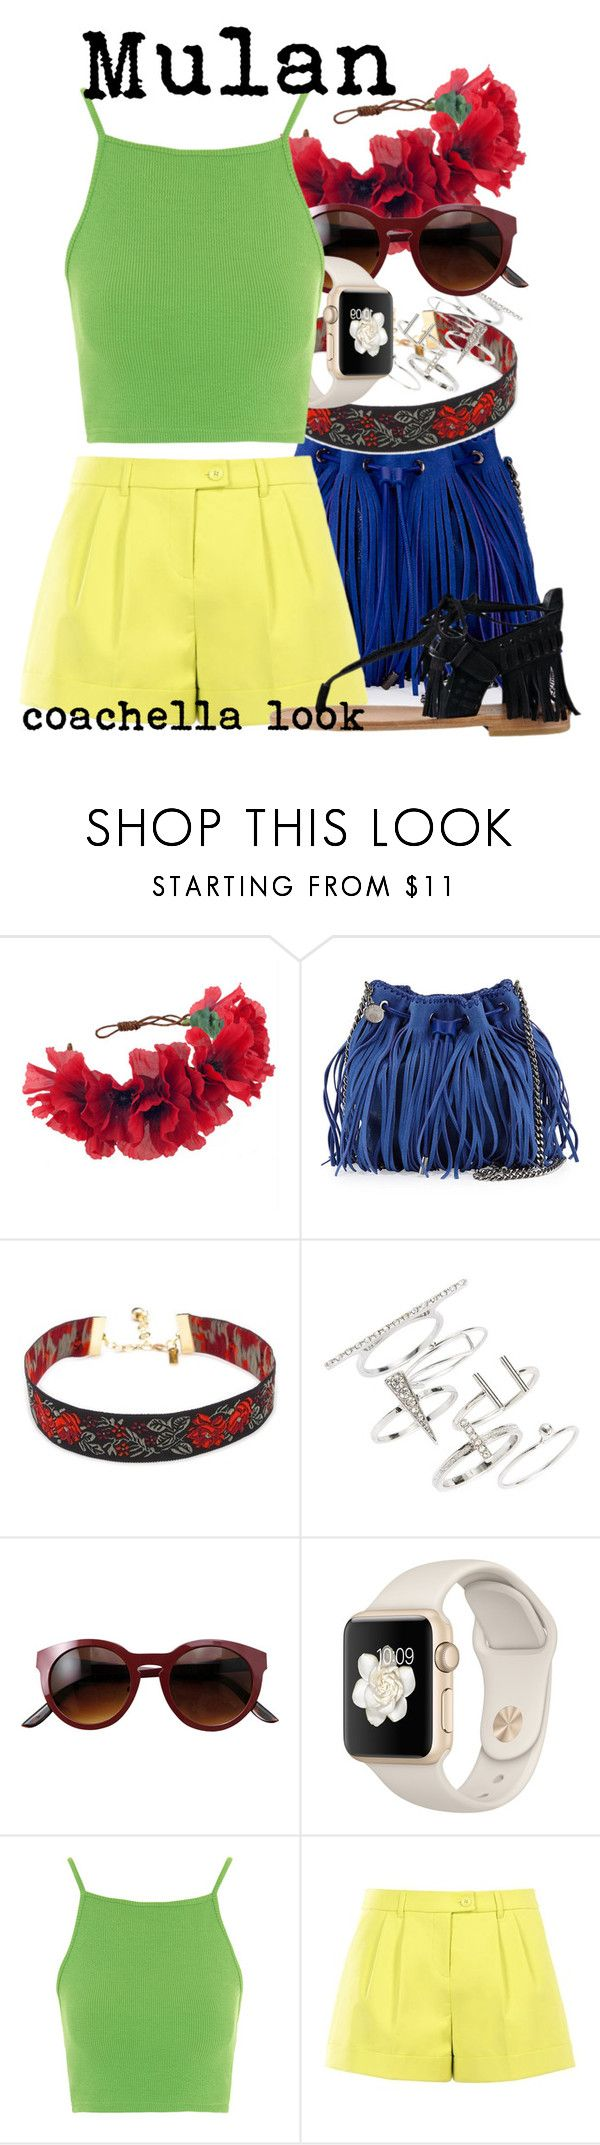 """Mulan - coachella look"" by anna-svt ❤ liked on Polyvore featuring Rock 'N Rose, STELLA McCARTNEY, Topshop, Boutique Moschino and Sigerson Morrison"